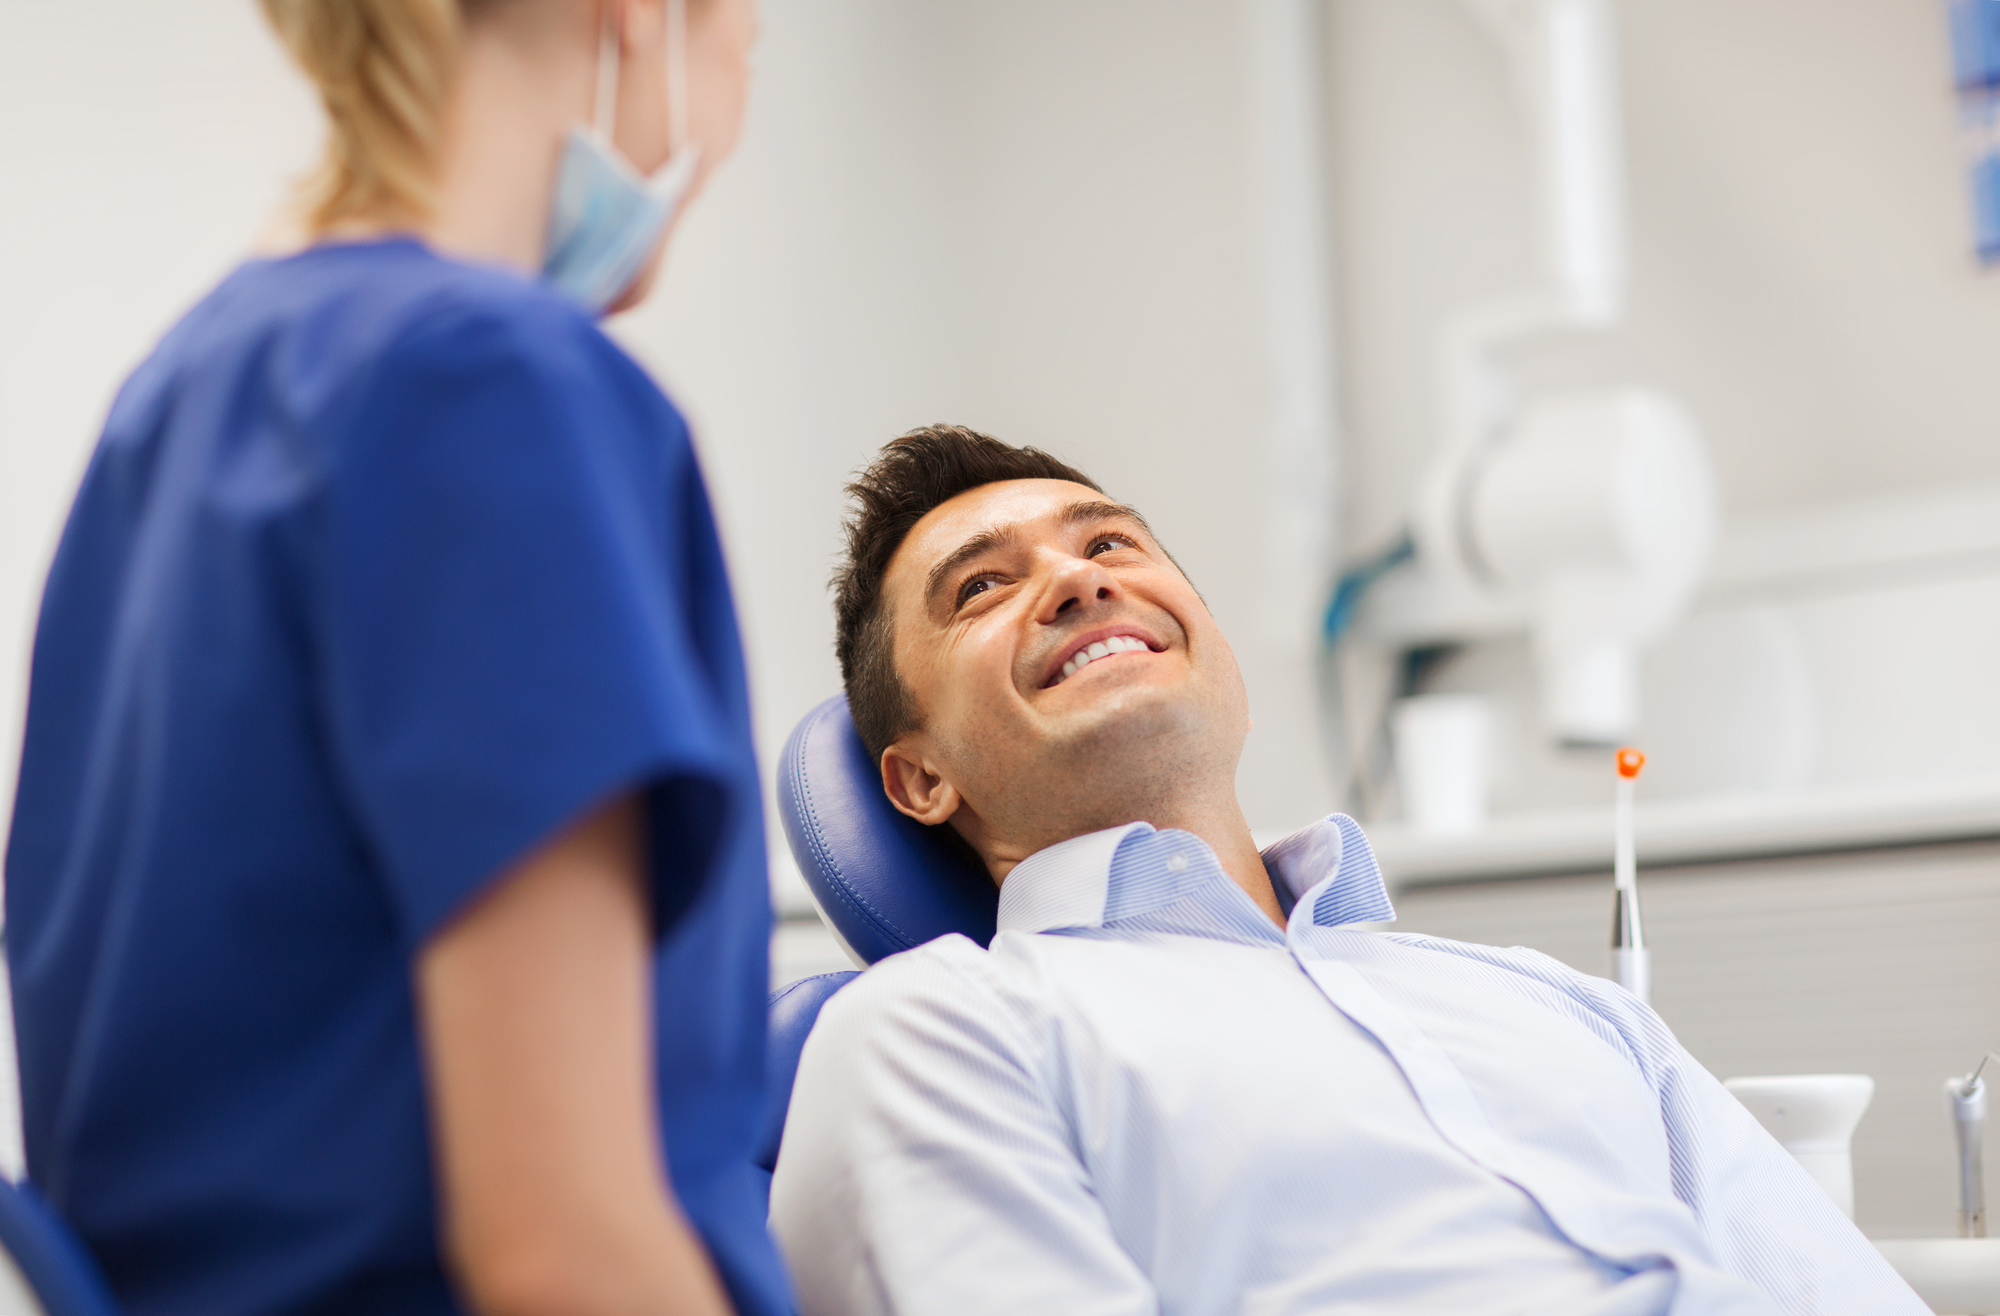 who is a good dentist west palm beach?